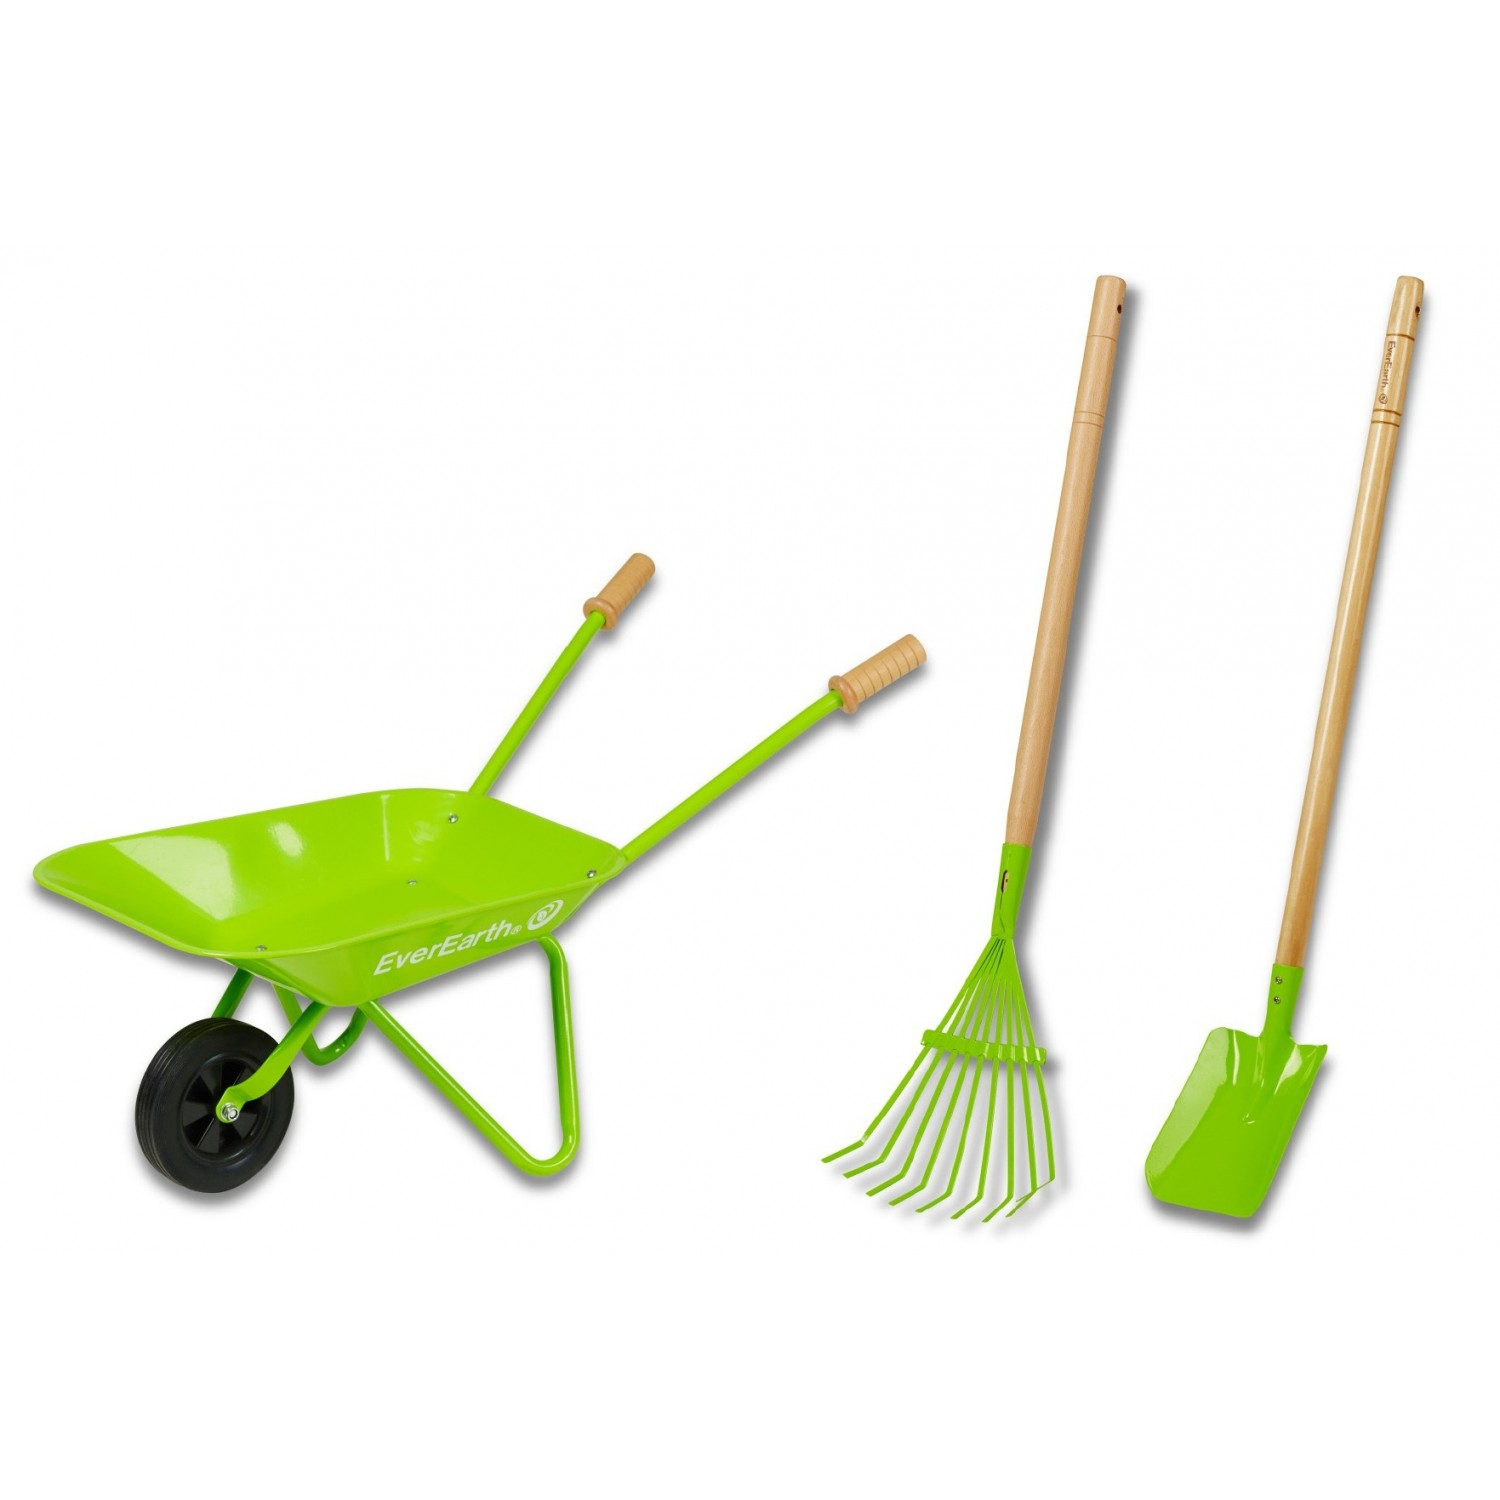 EverEarth Garden Tools Professional Set for Children